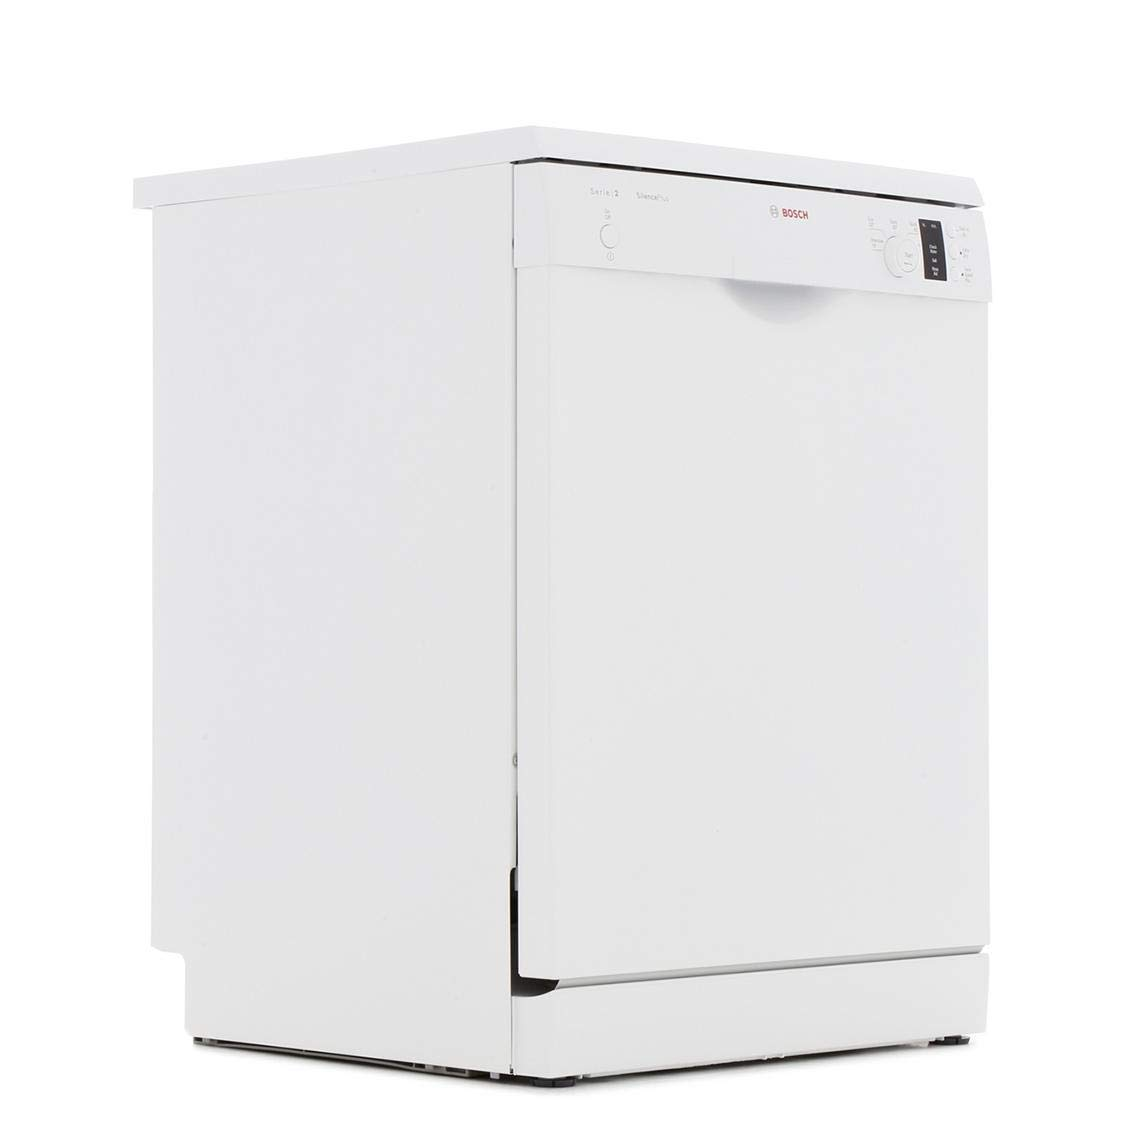 Bosch Serie 2 SMS25AW00GActiveWater 60 Centimeter Freestanding Dishwasher with 12 Place Settings, A Plus Plus Energy Rating, Delay Timer and Load Sensor (White) [Energy Class A++]